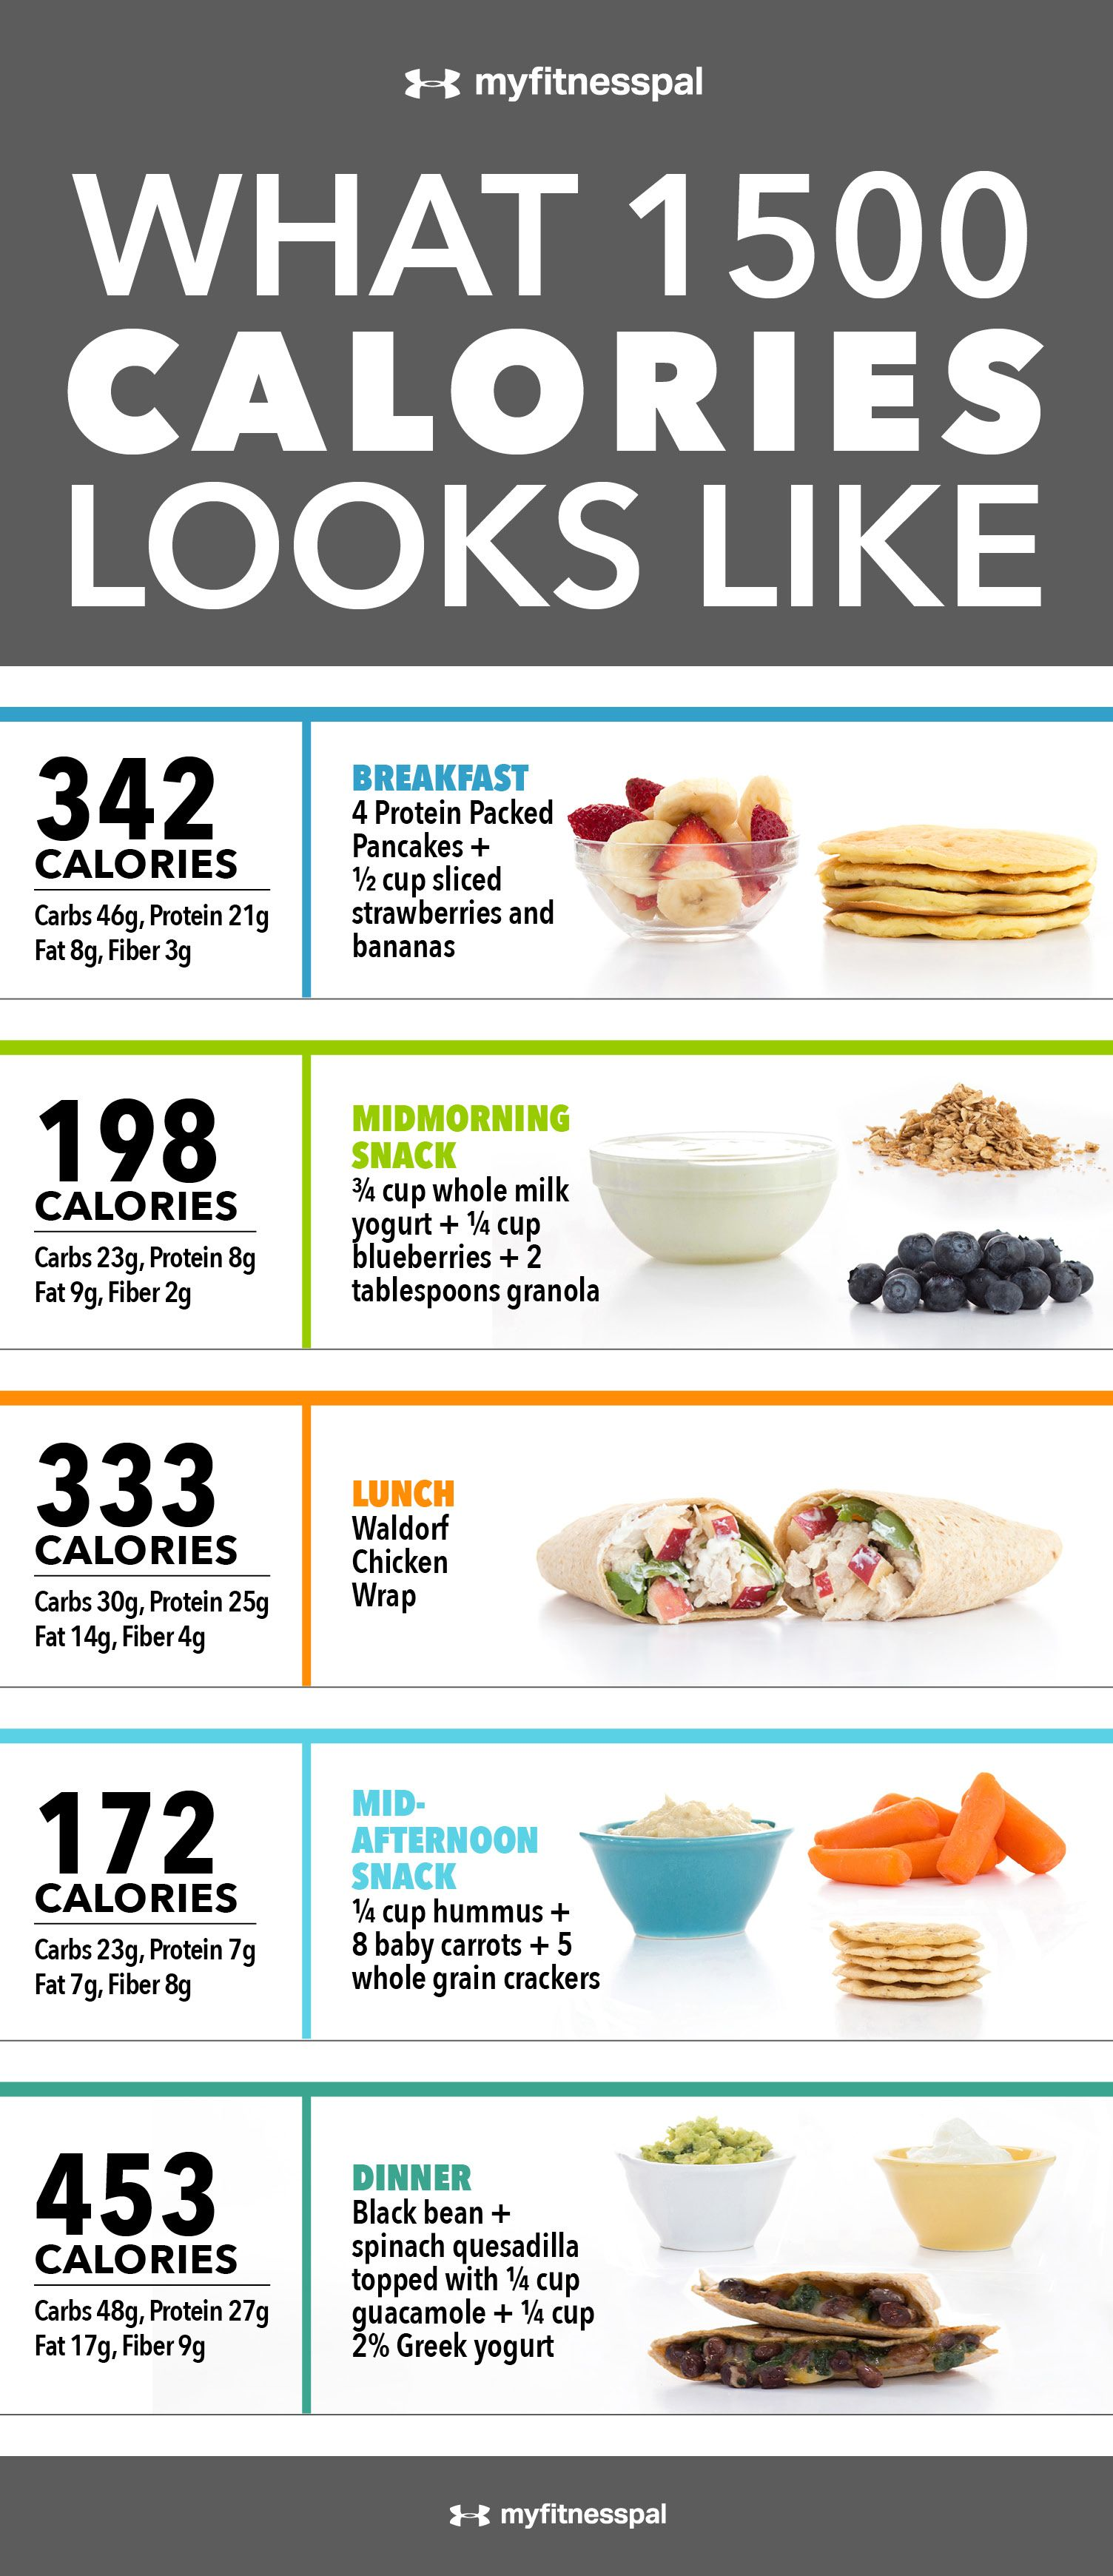 I Love Taking Elements Of Different Meal Plans And Incorporating Them Into My Own 1500 Calorie Meal Plan 1500 Calorie Diet Myfitnesspal Recipes